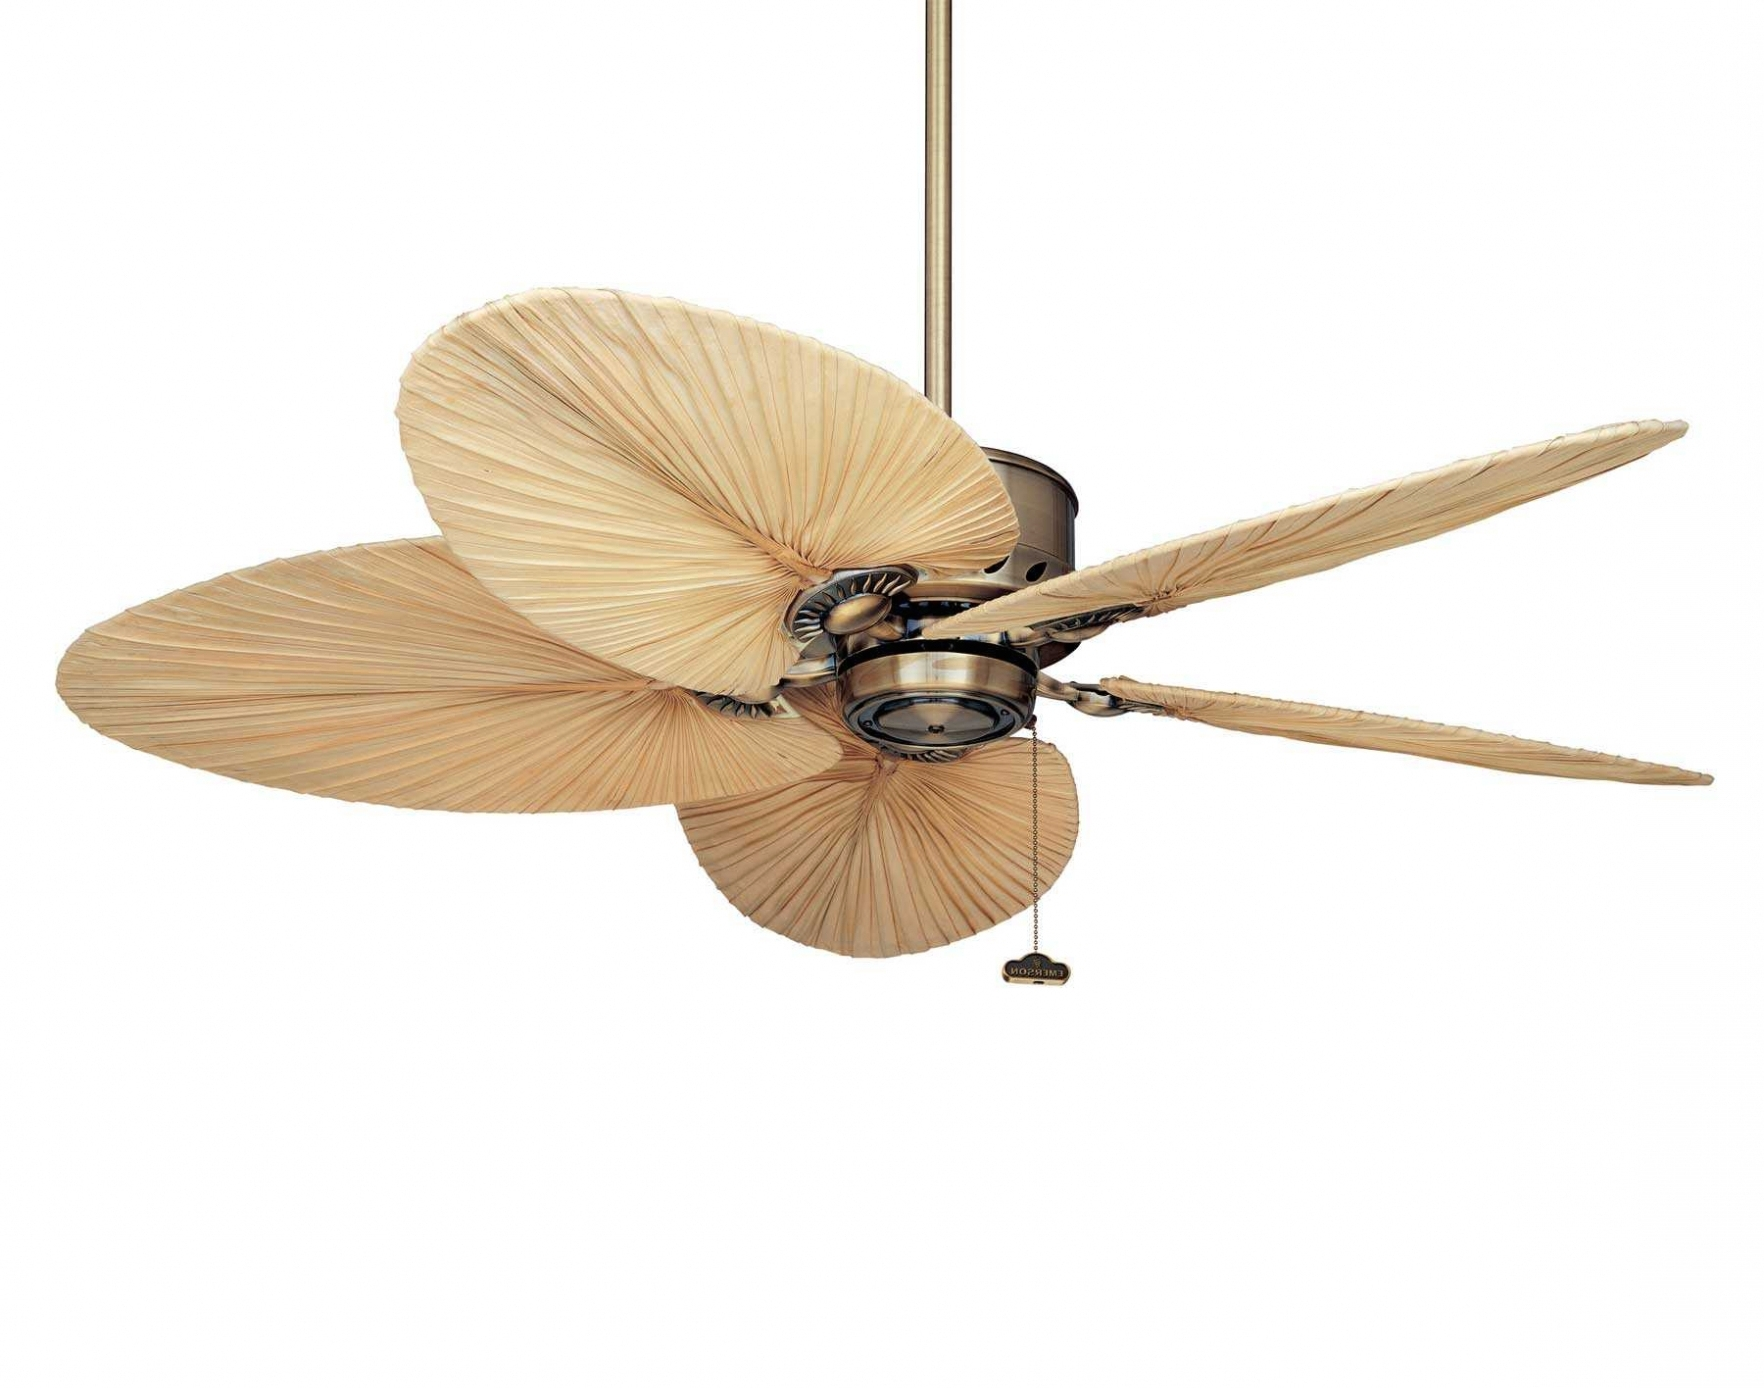 Tips: Tropical Outdoor Ceiling Fans With Lights White Fan 2018 And Intended For Recent Tropical Outdoor Ceiling Fans (View 8 of 20)